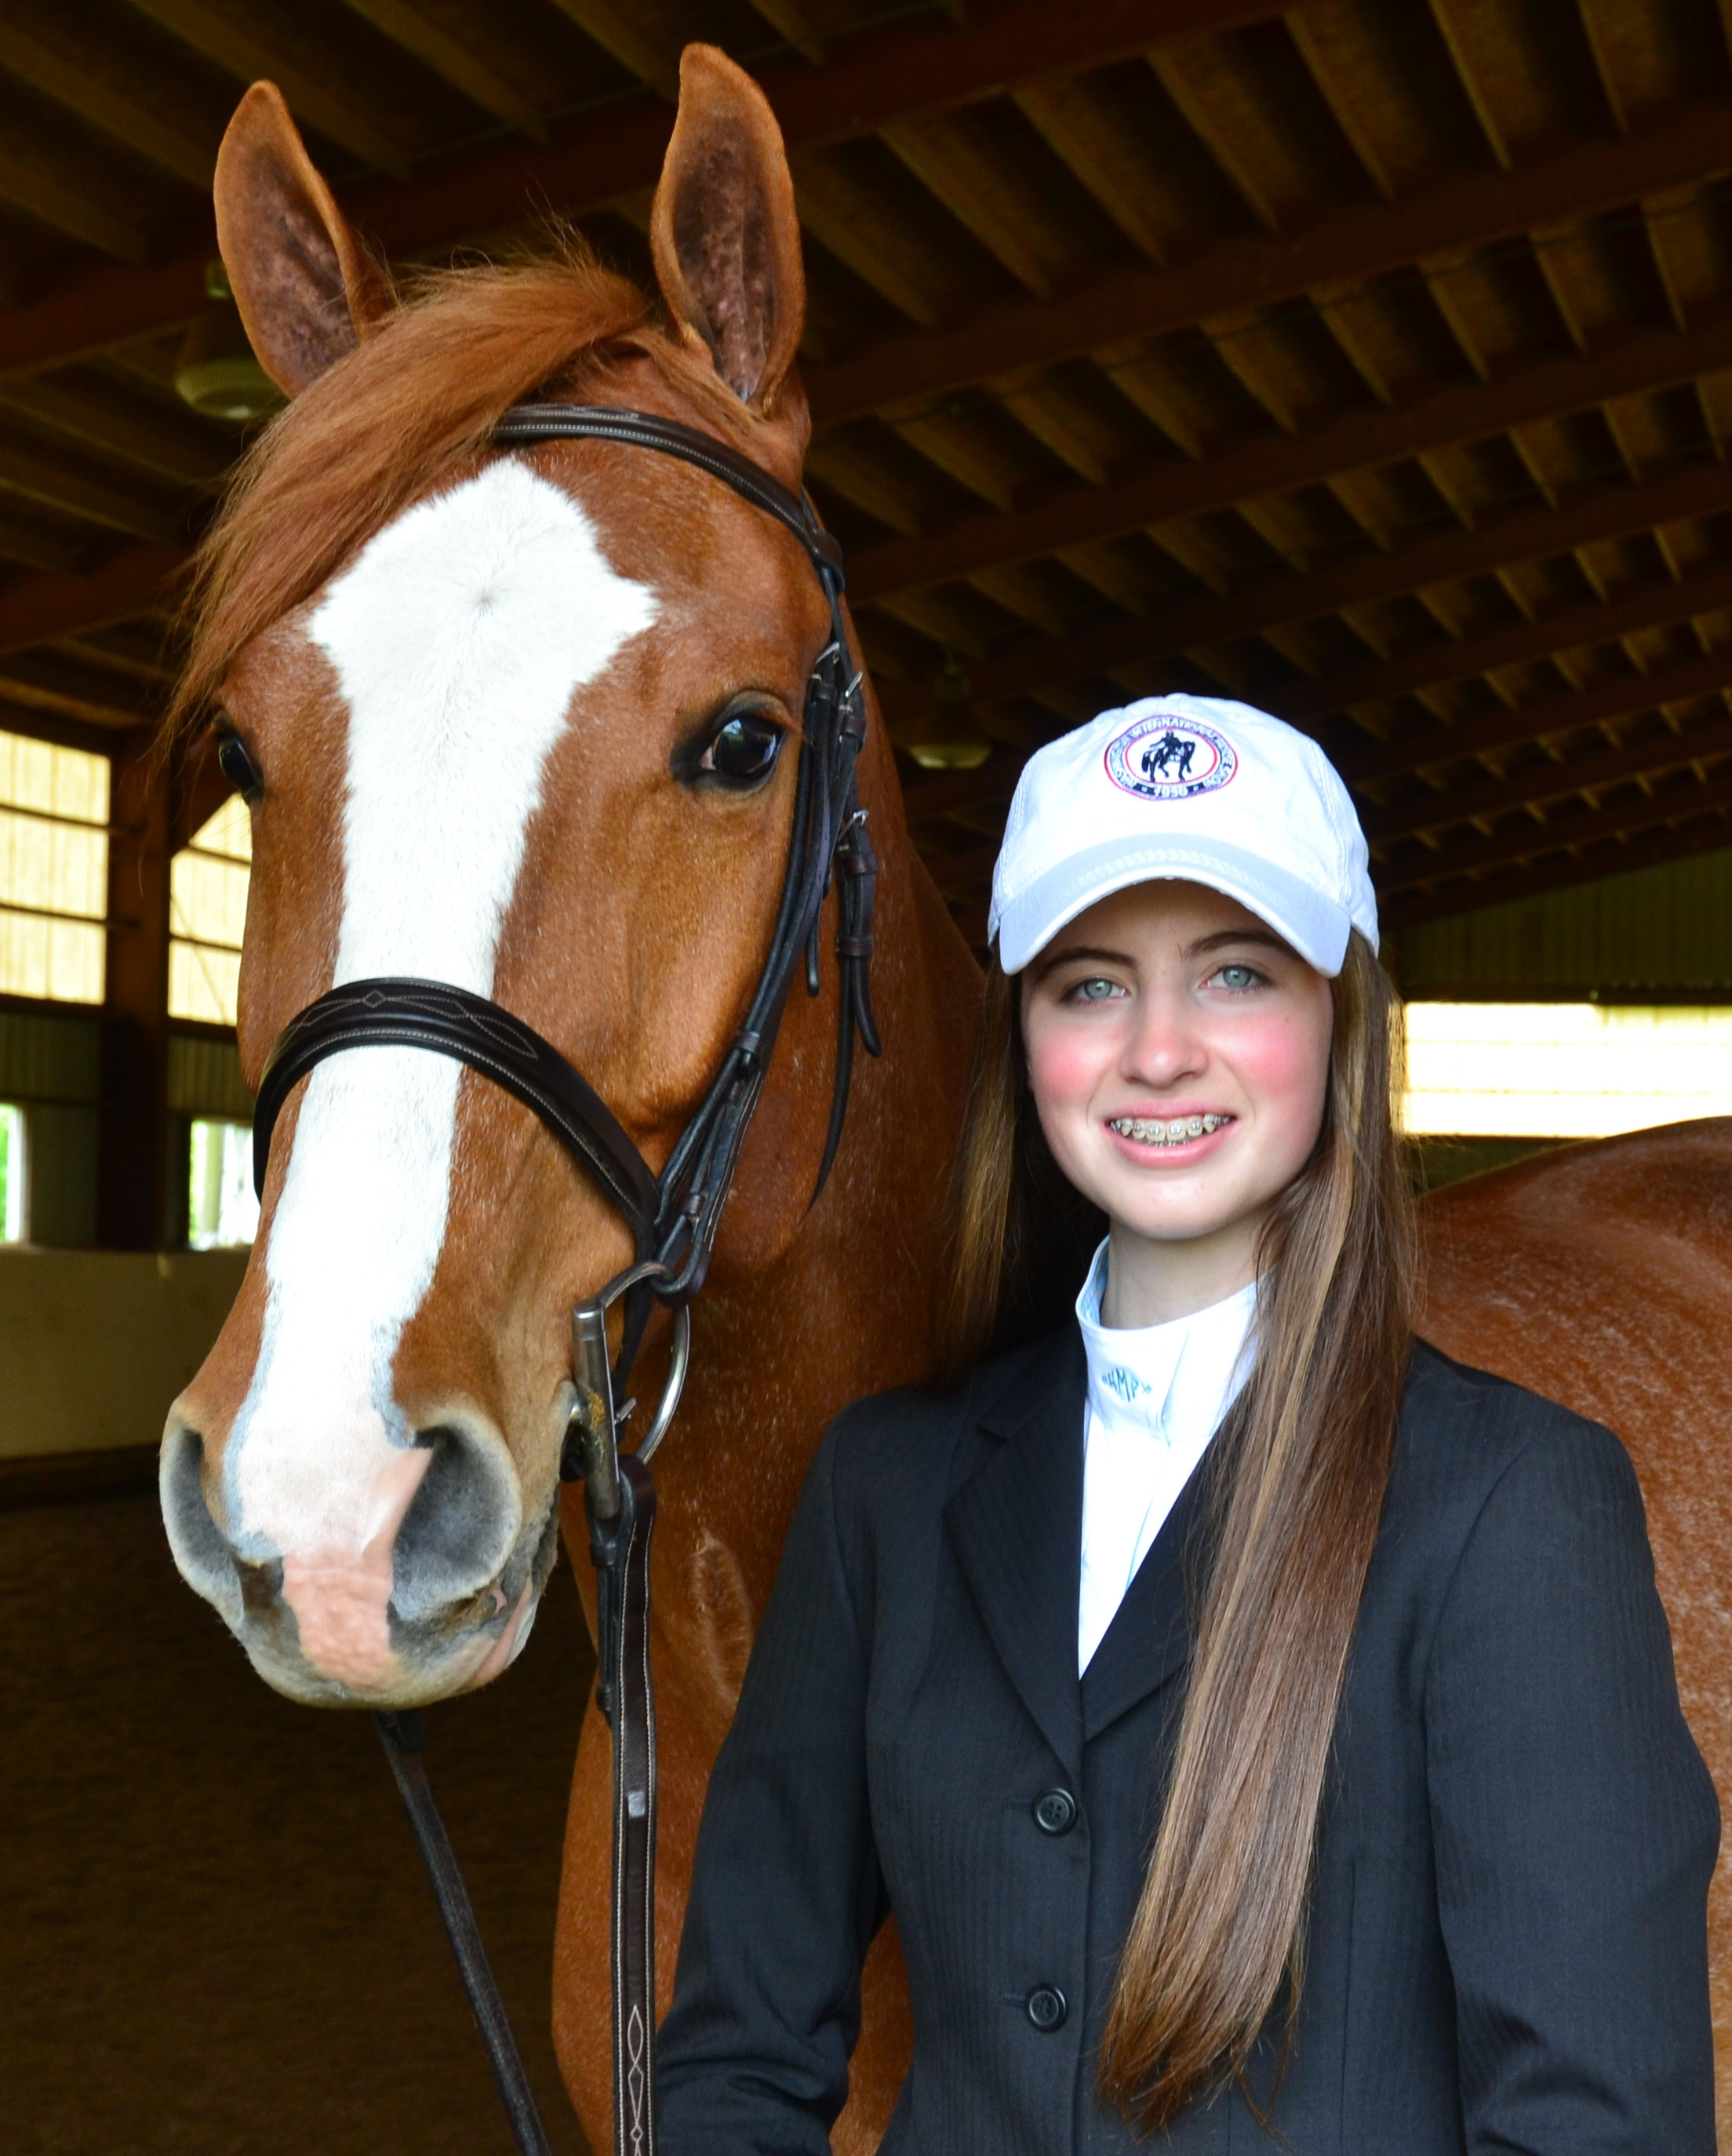 Young equestrian Katherine F. McCoy, 16, of Arlington, Va., takes up the reins as Youth Ambassador of the 2016 Washington International Horse Show. <br><b>Photo provided by WIHS</b>